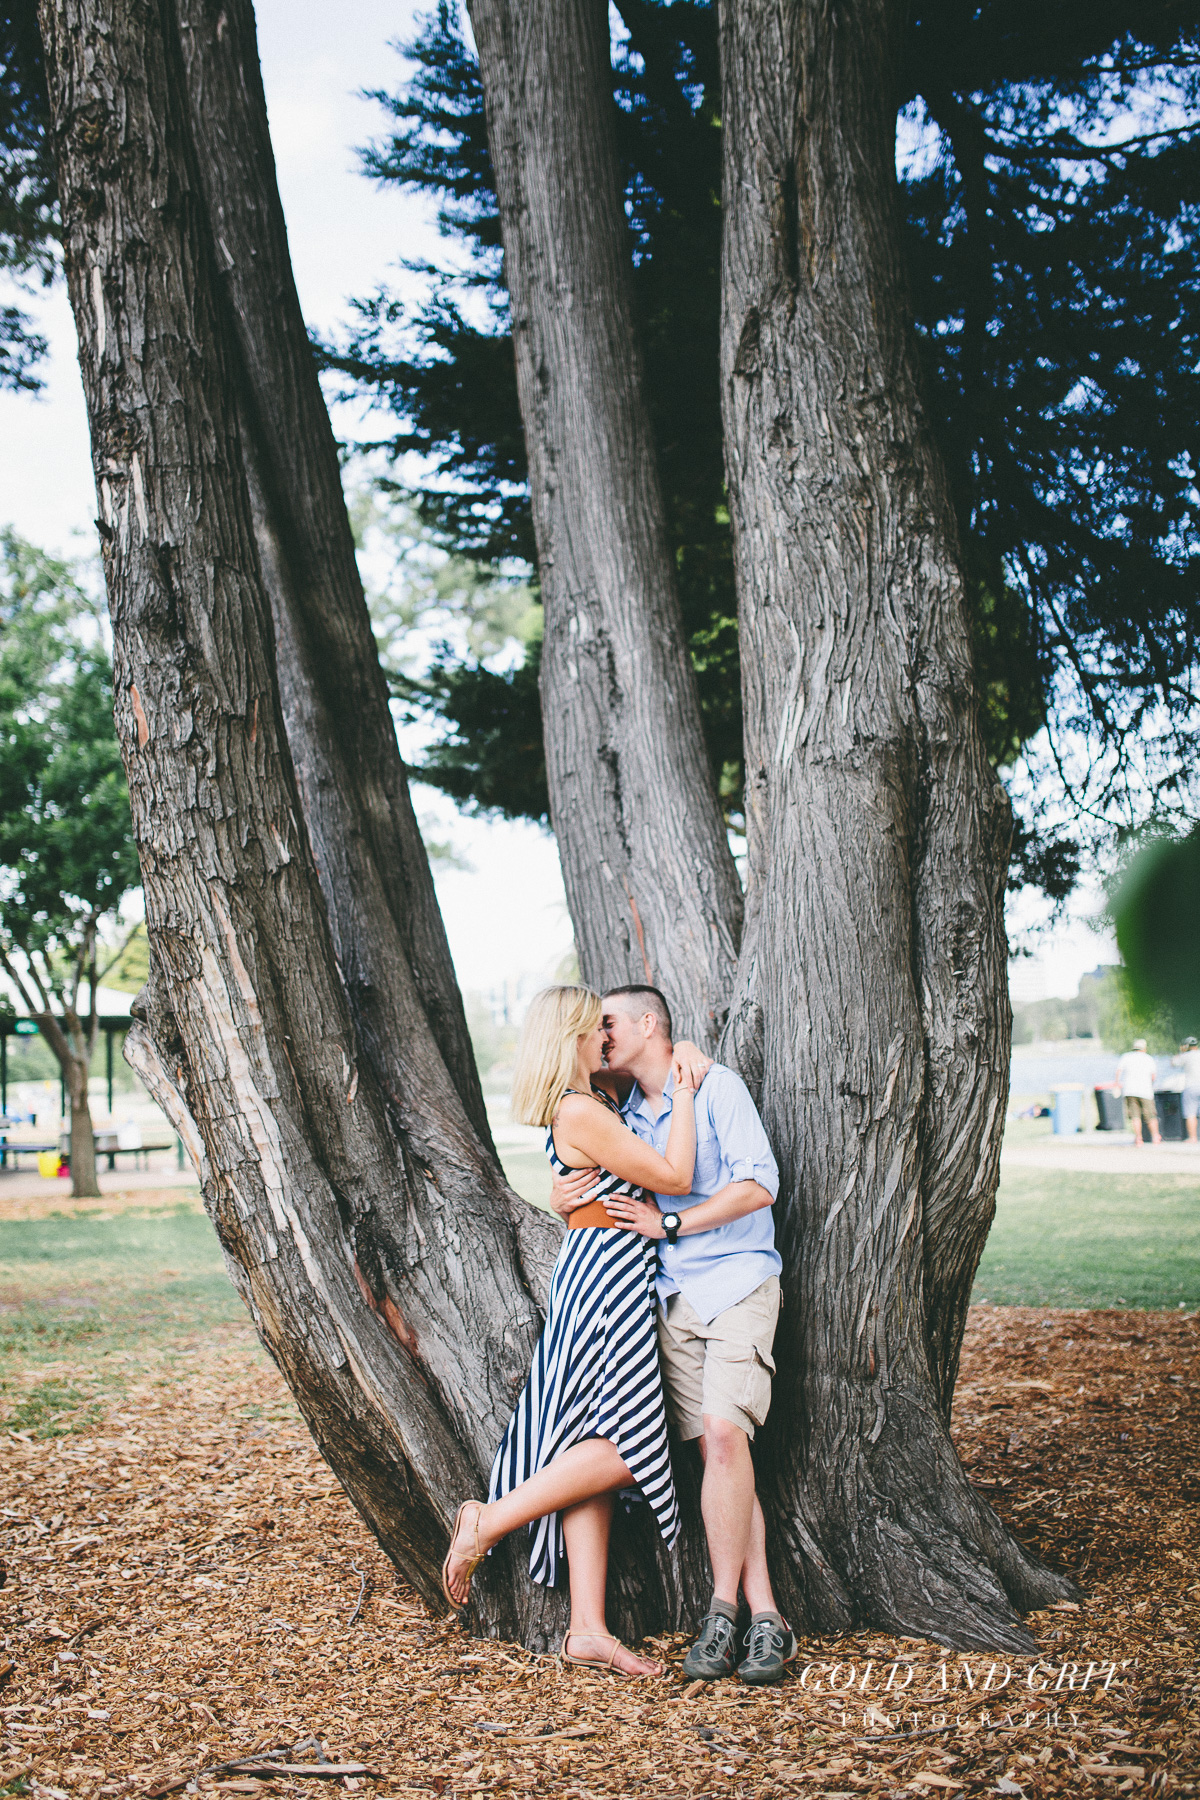 Cat-Rick-Engagement-Party-Albert-Park-Melbourne-Wedding-Event-Portrait-Photography-349